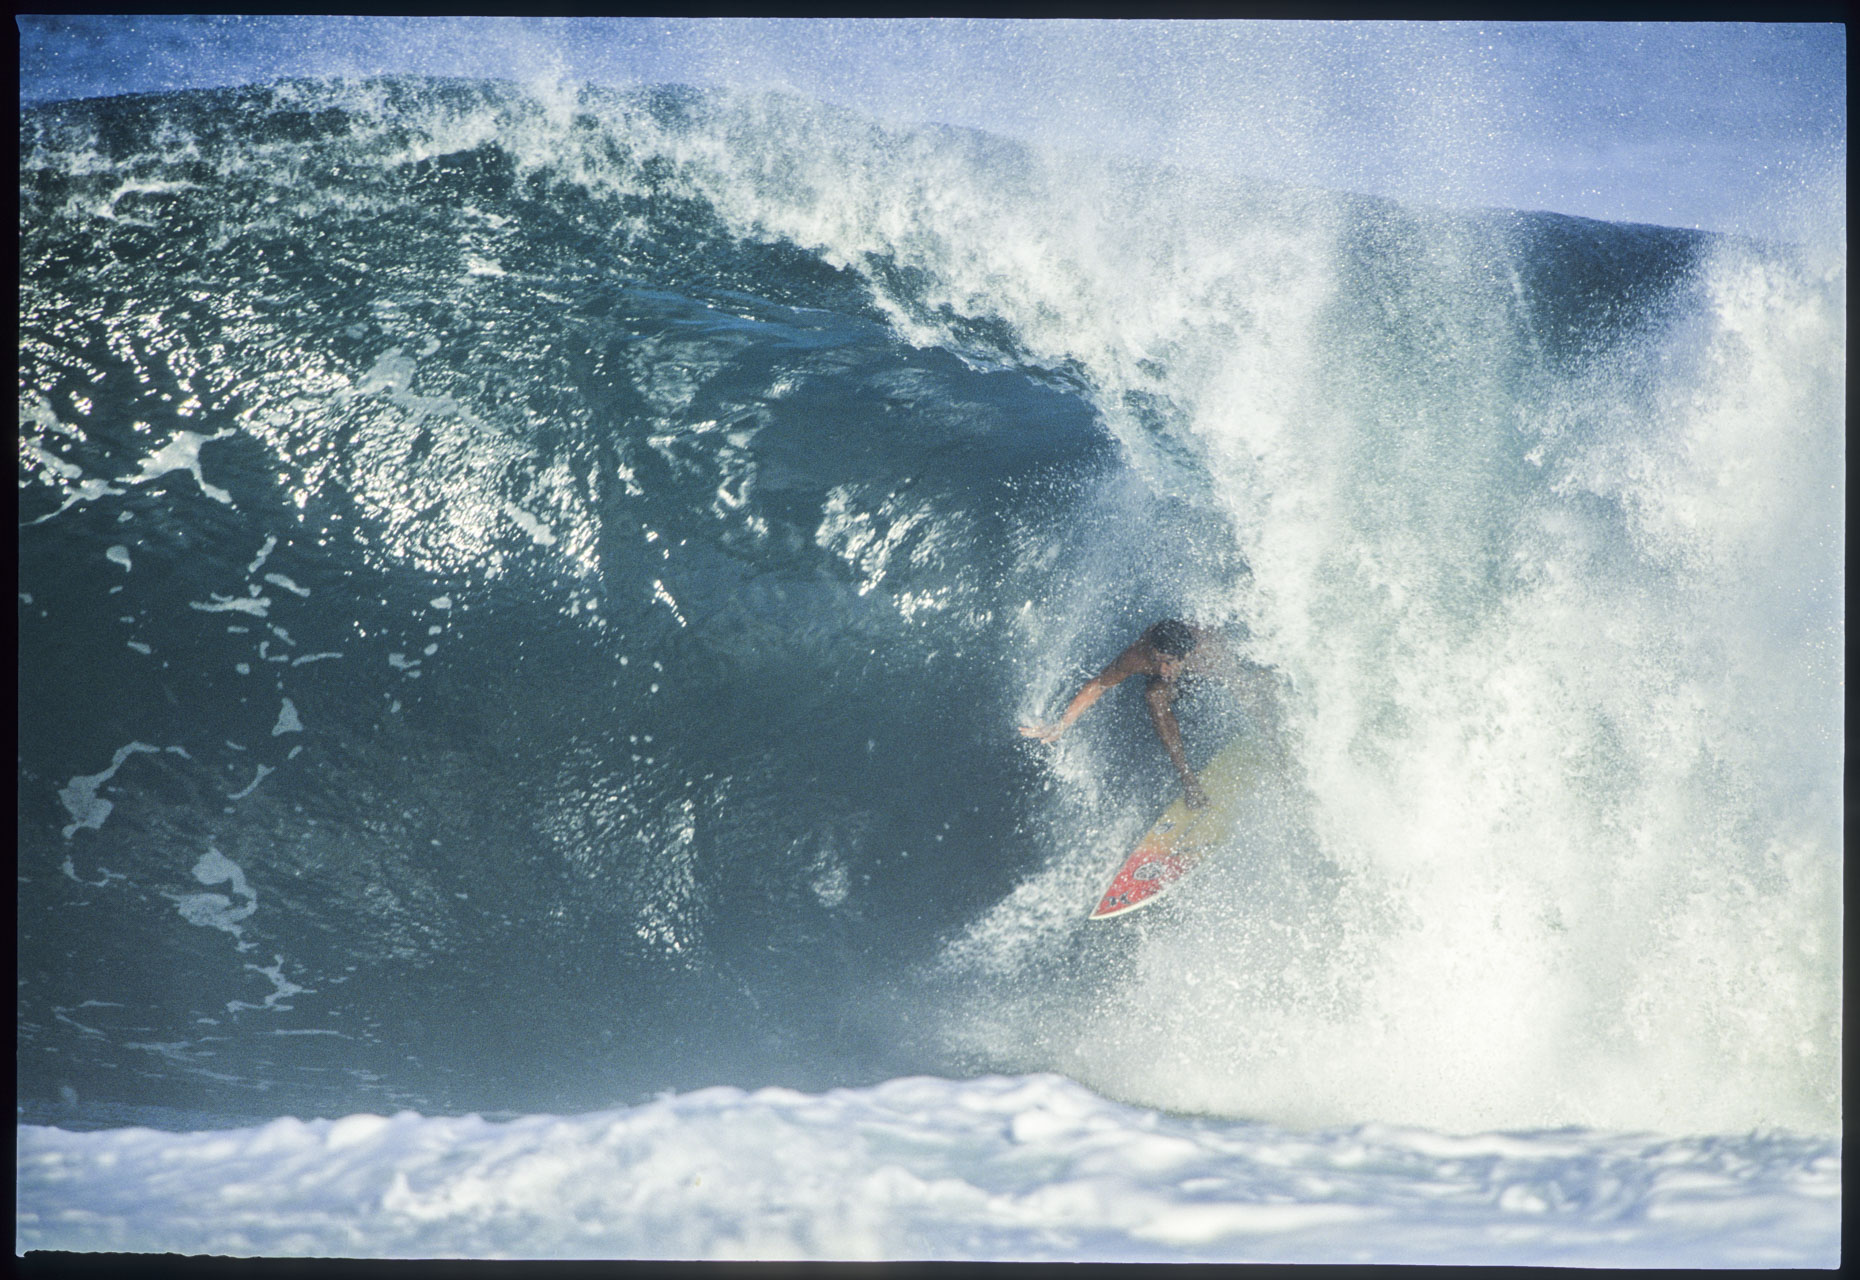 Braden Diaz - Backdoor Pipeline